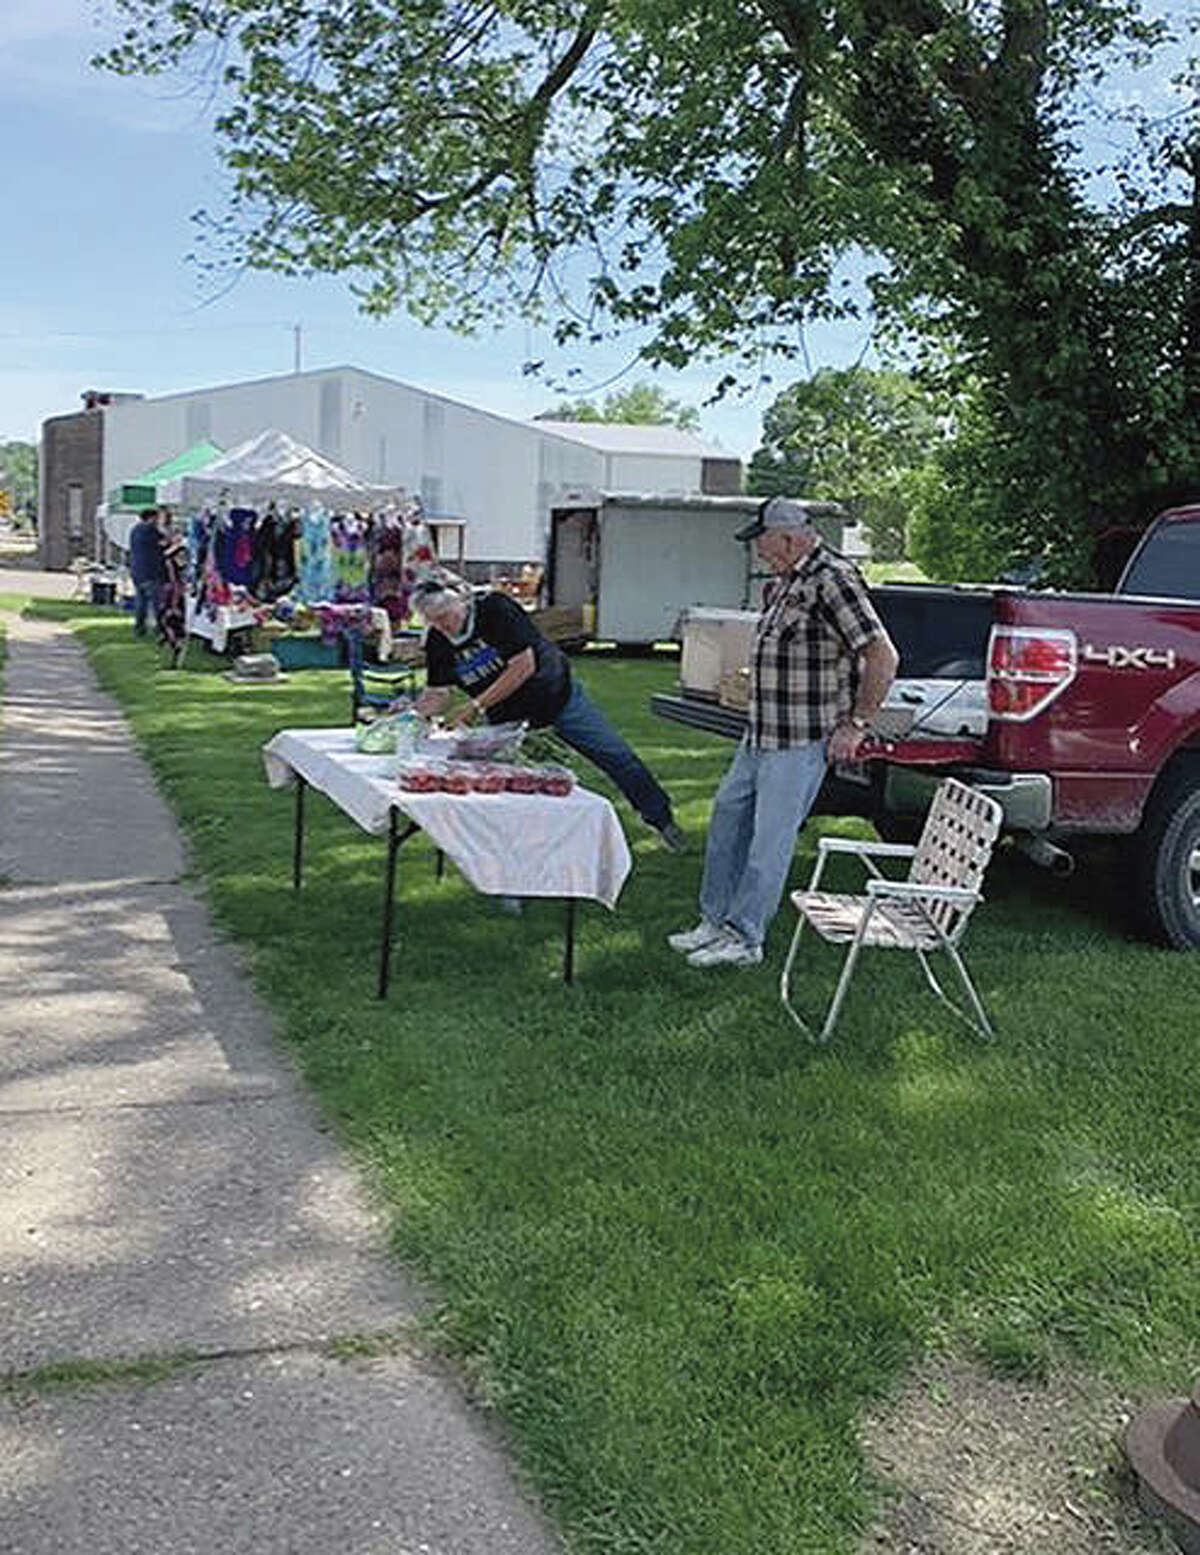 Vendors get ready for the start of the summer market in Bluffs' downtown park. The market is open from 4 to 6 p.m. Tuesdays in June and July and includes homegrown vegetables and other items. Musician Robert Sampson is performing during the market in June.